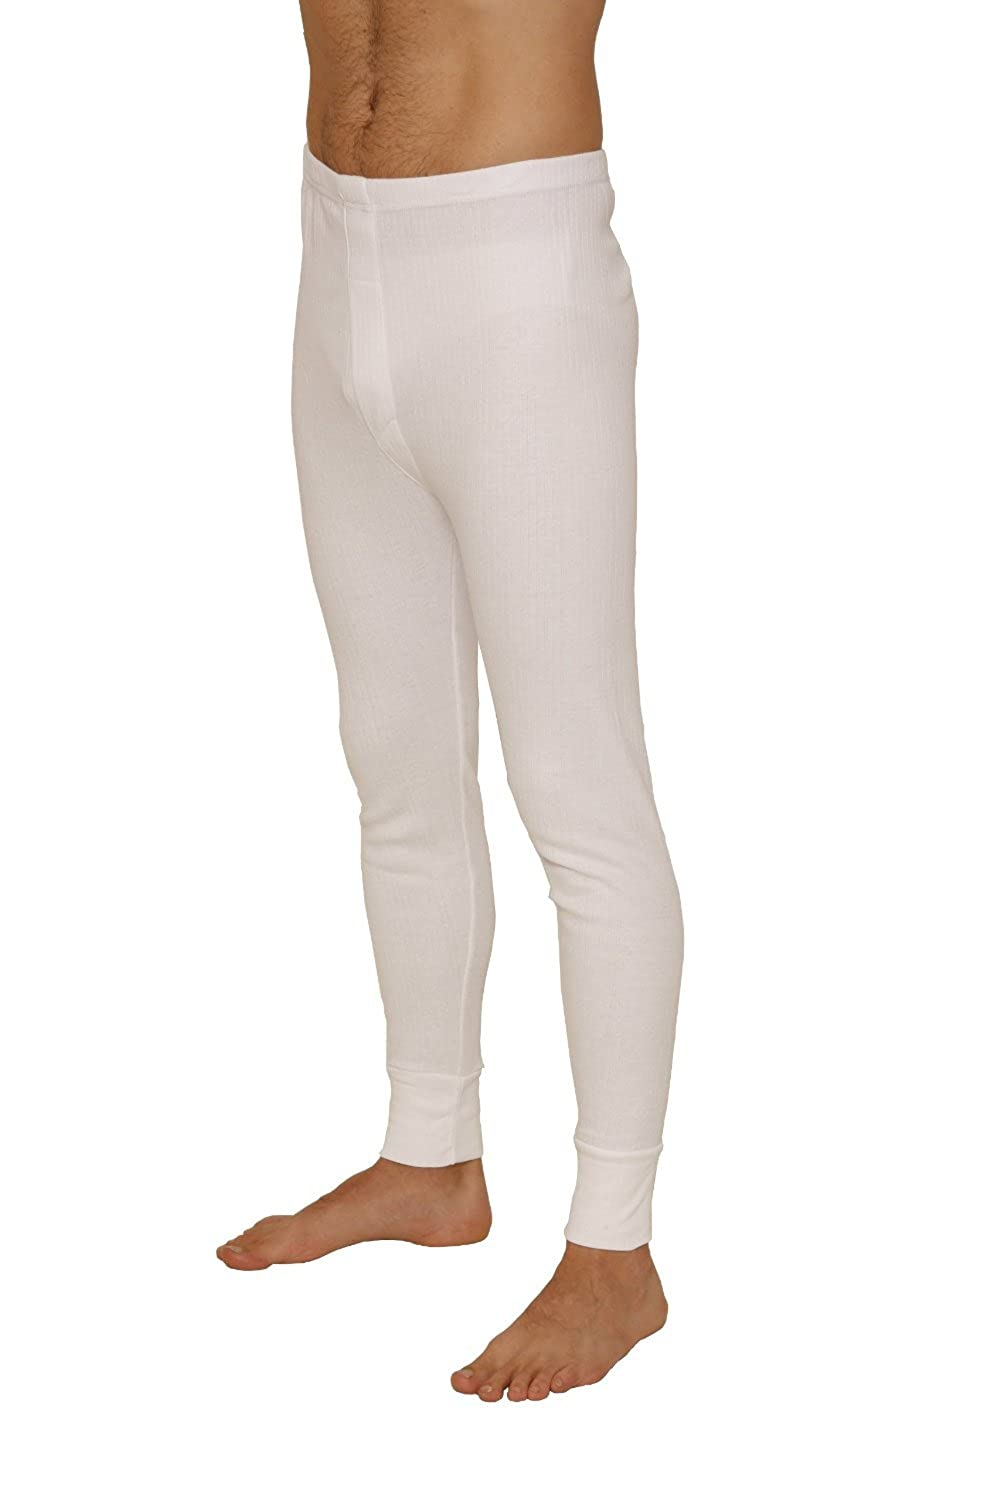 3 PACK: OCTAVE® Mens Thermal Underwear Long John / Long Underwear